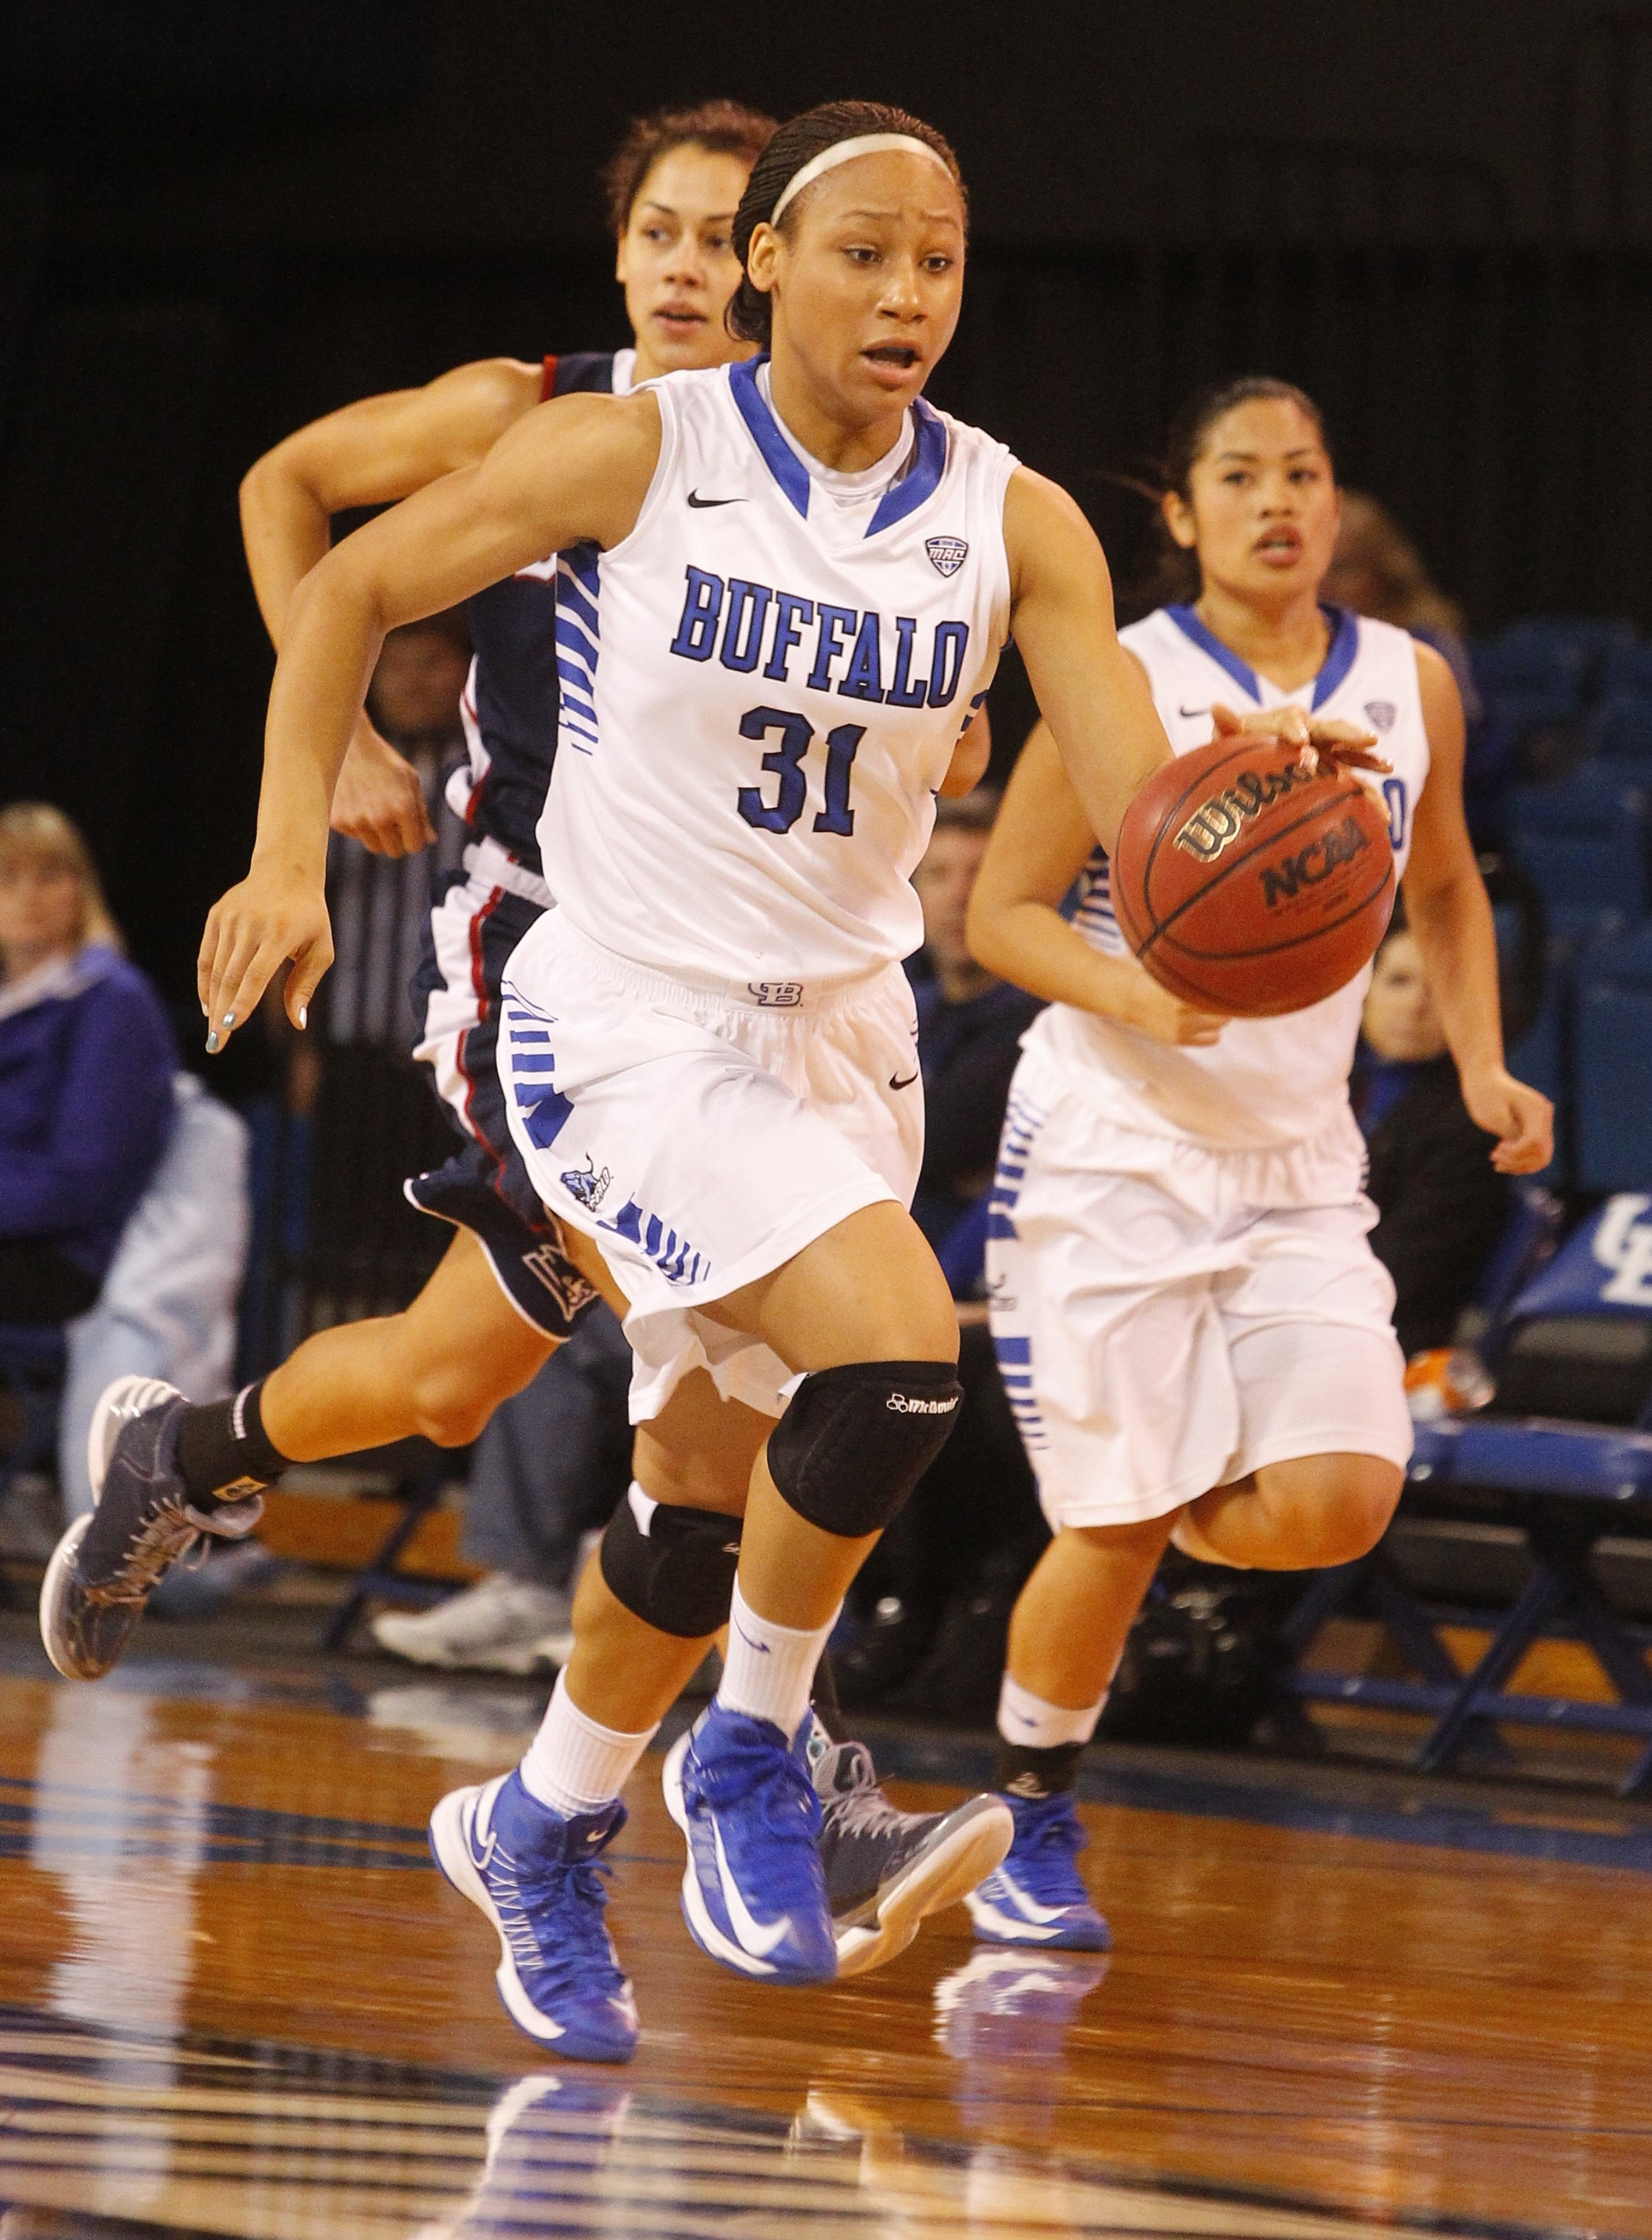 Buffalo's Rachael Gregory (31) goes out on the fast break against Duquesne.